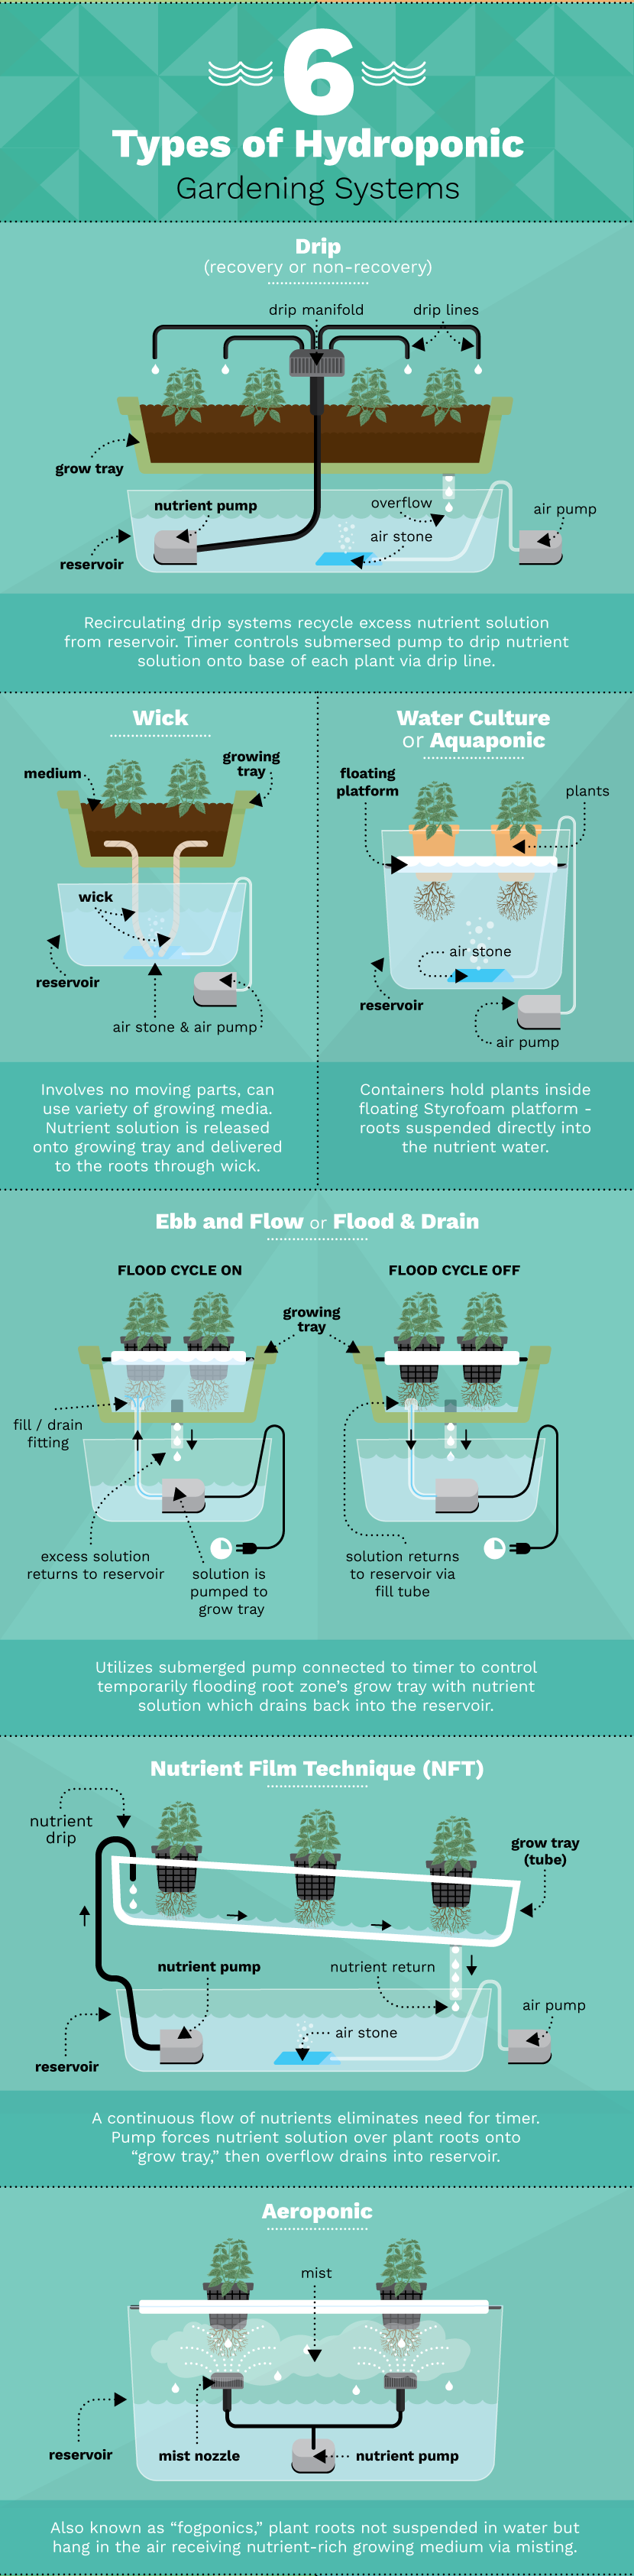 six-types-hydroponic-gardening-systems